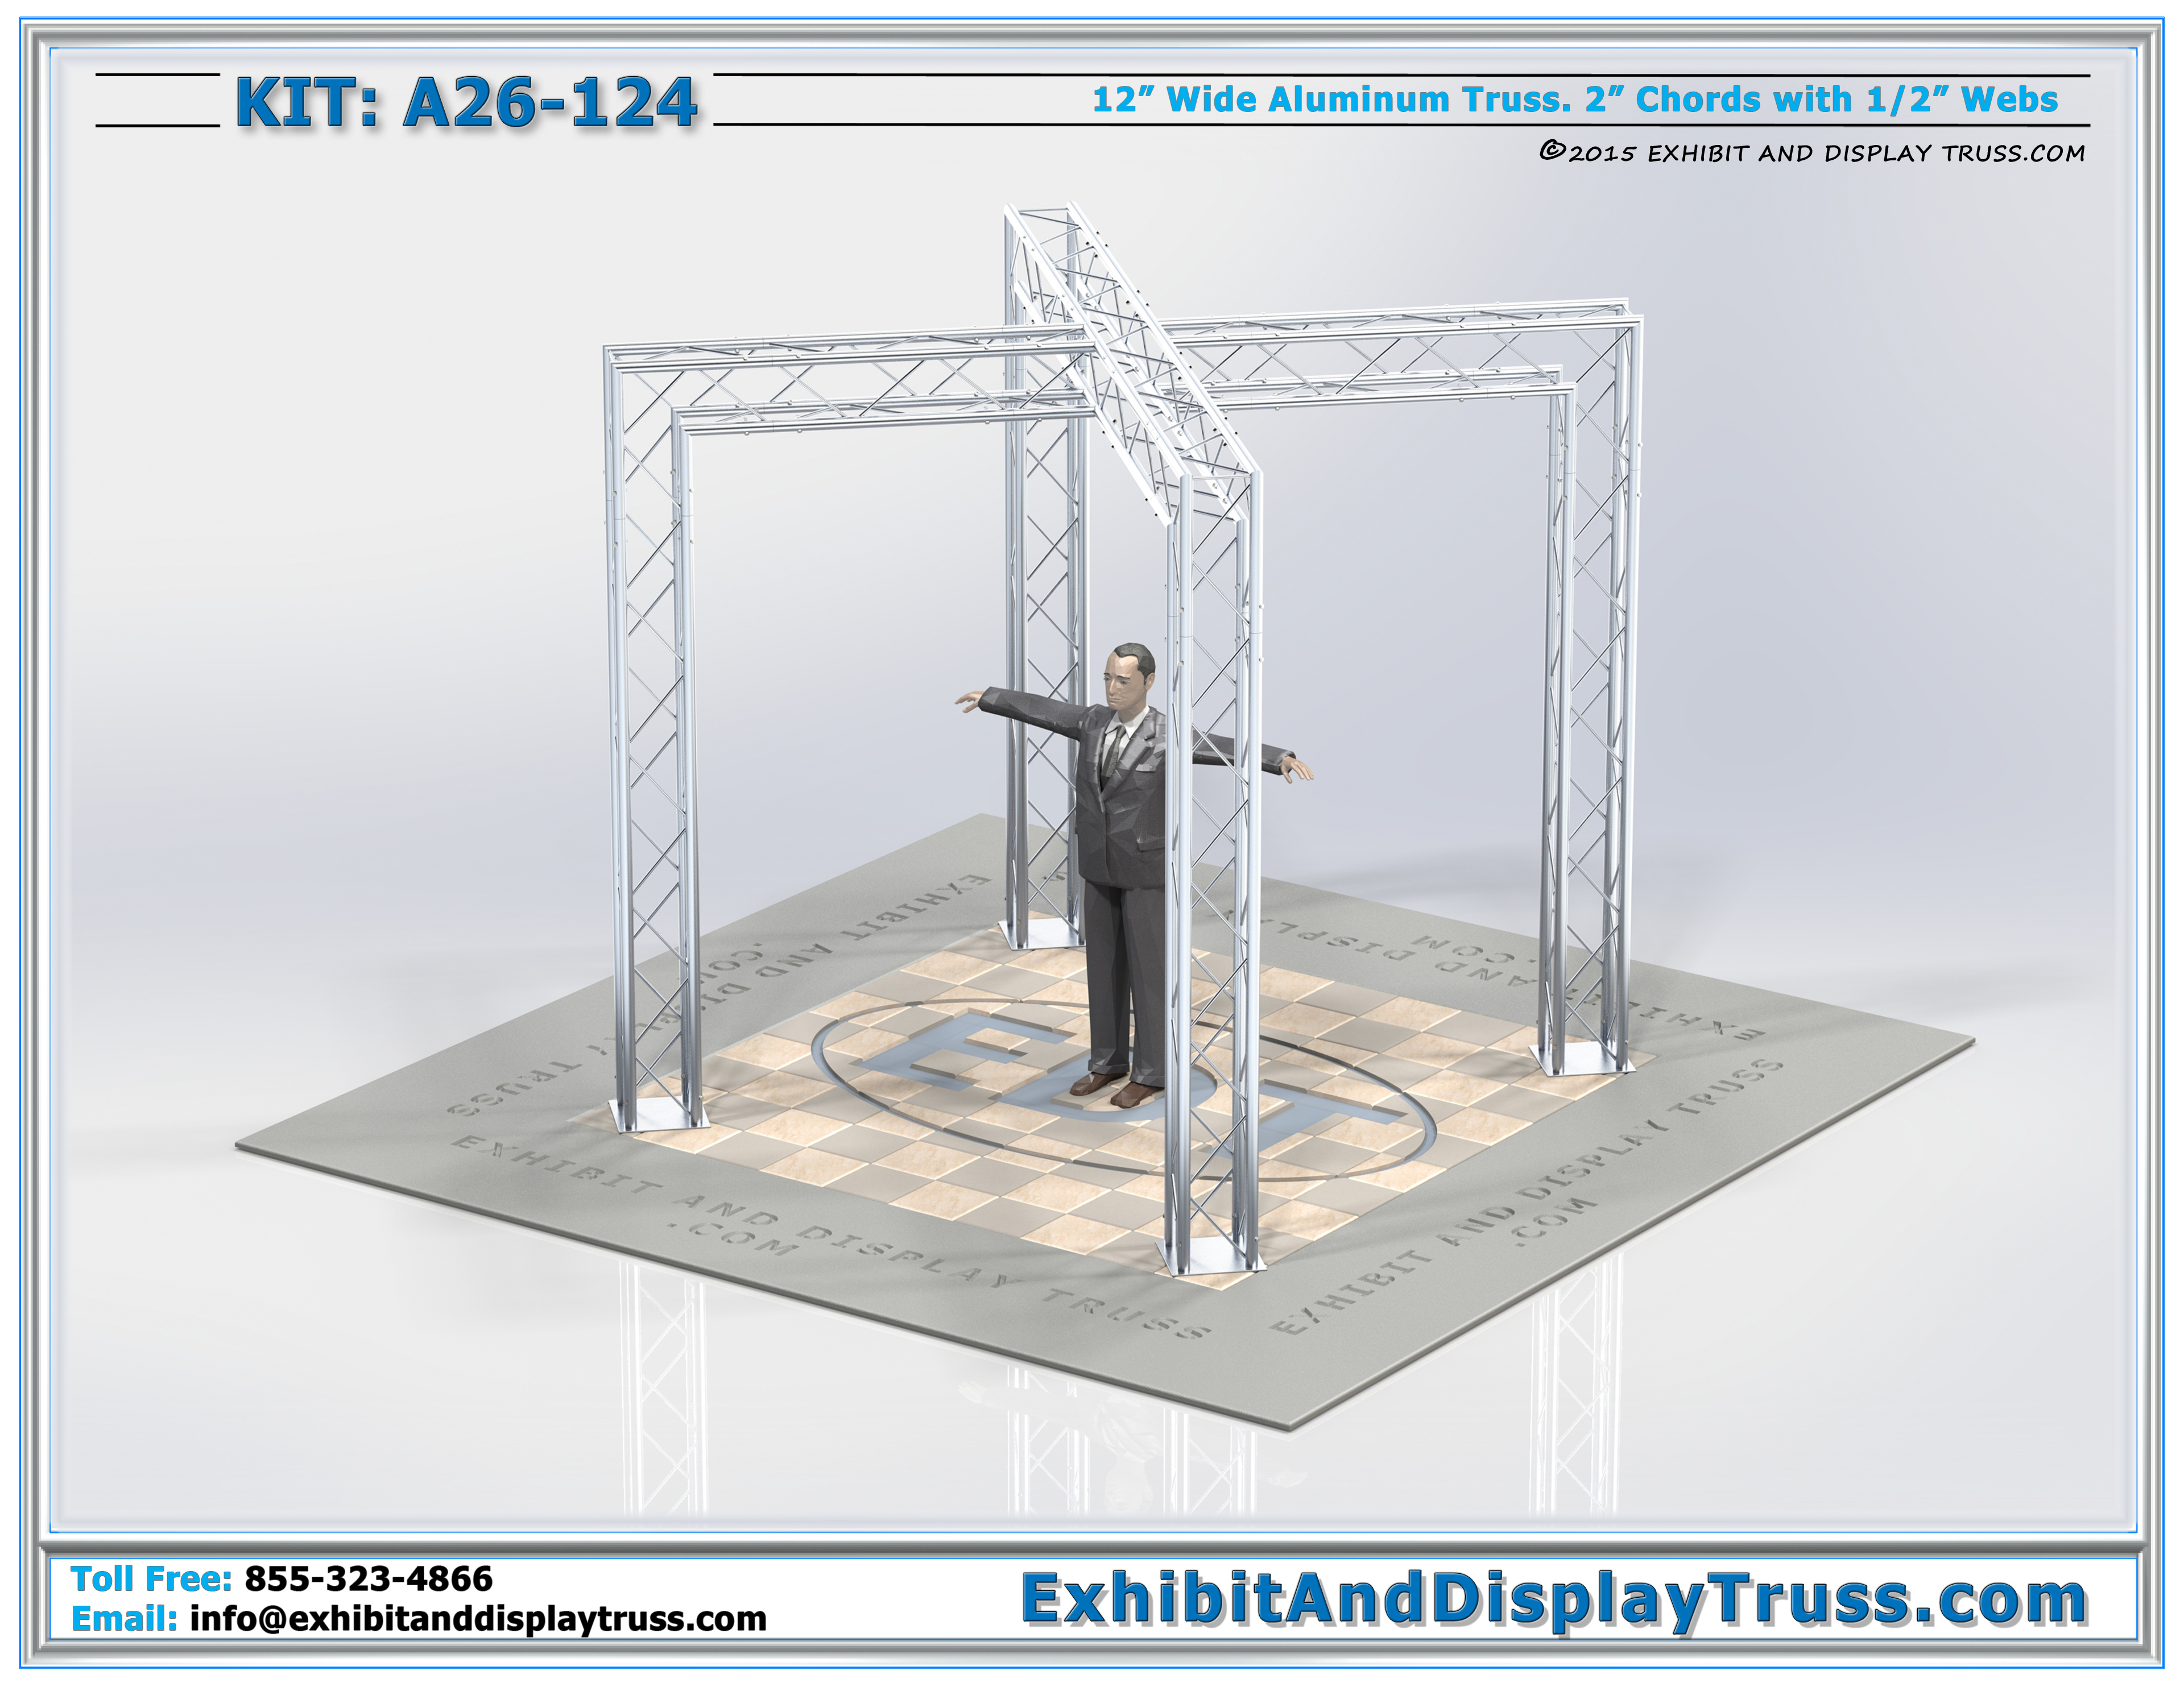 Trade Show Booth Dimensions : Exhibit display kits a